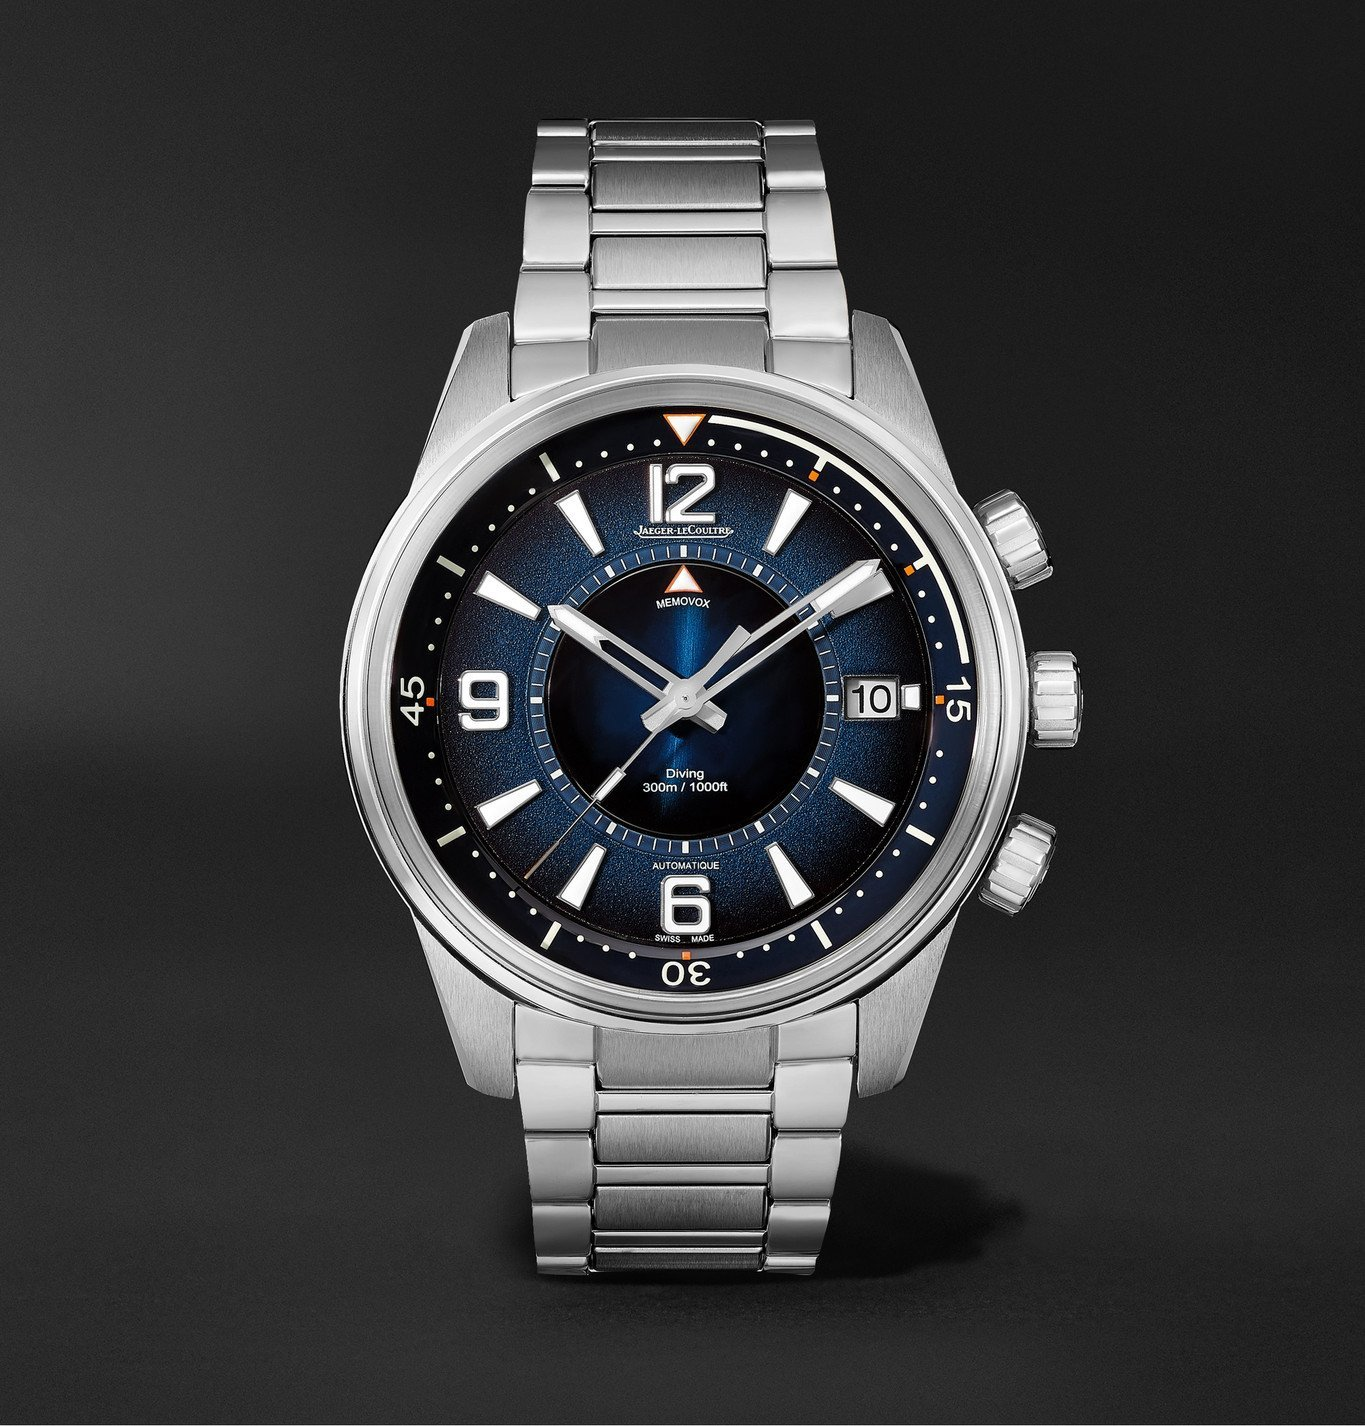 Photo: Jaeger-LeCoultre - Polaris Mariner Memovox Automatic 42mm Stainless Steel Watch, Ref. No. 9038180 - Black